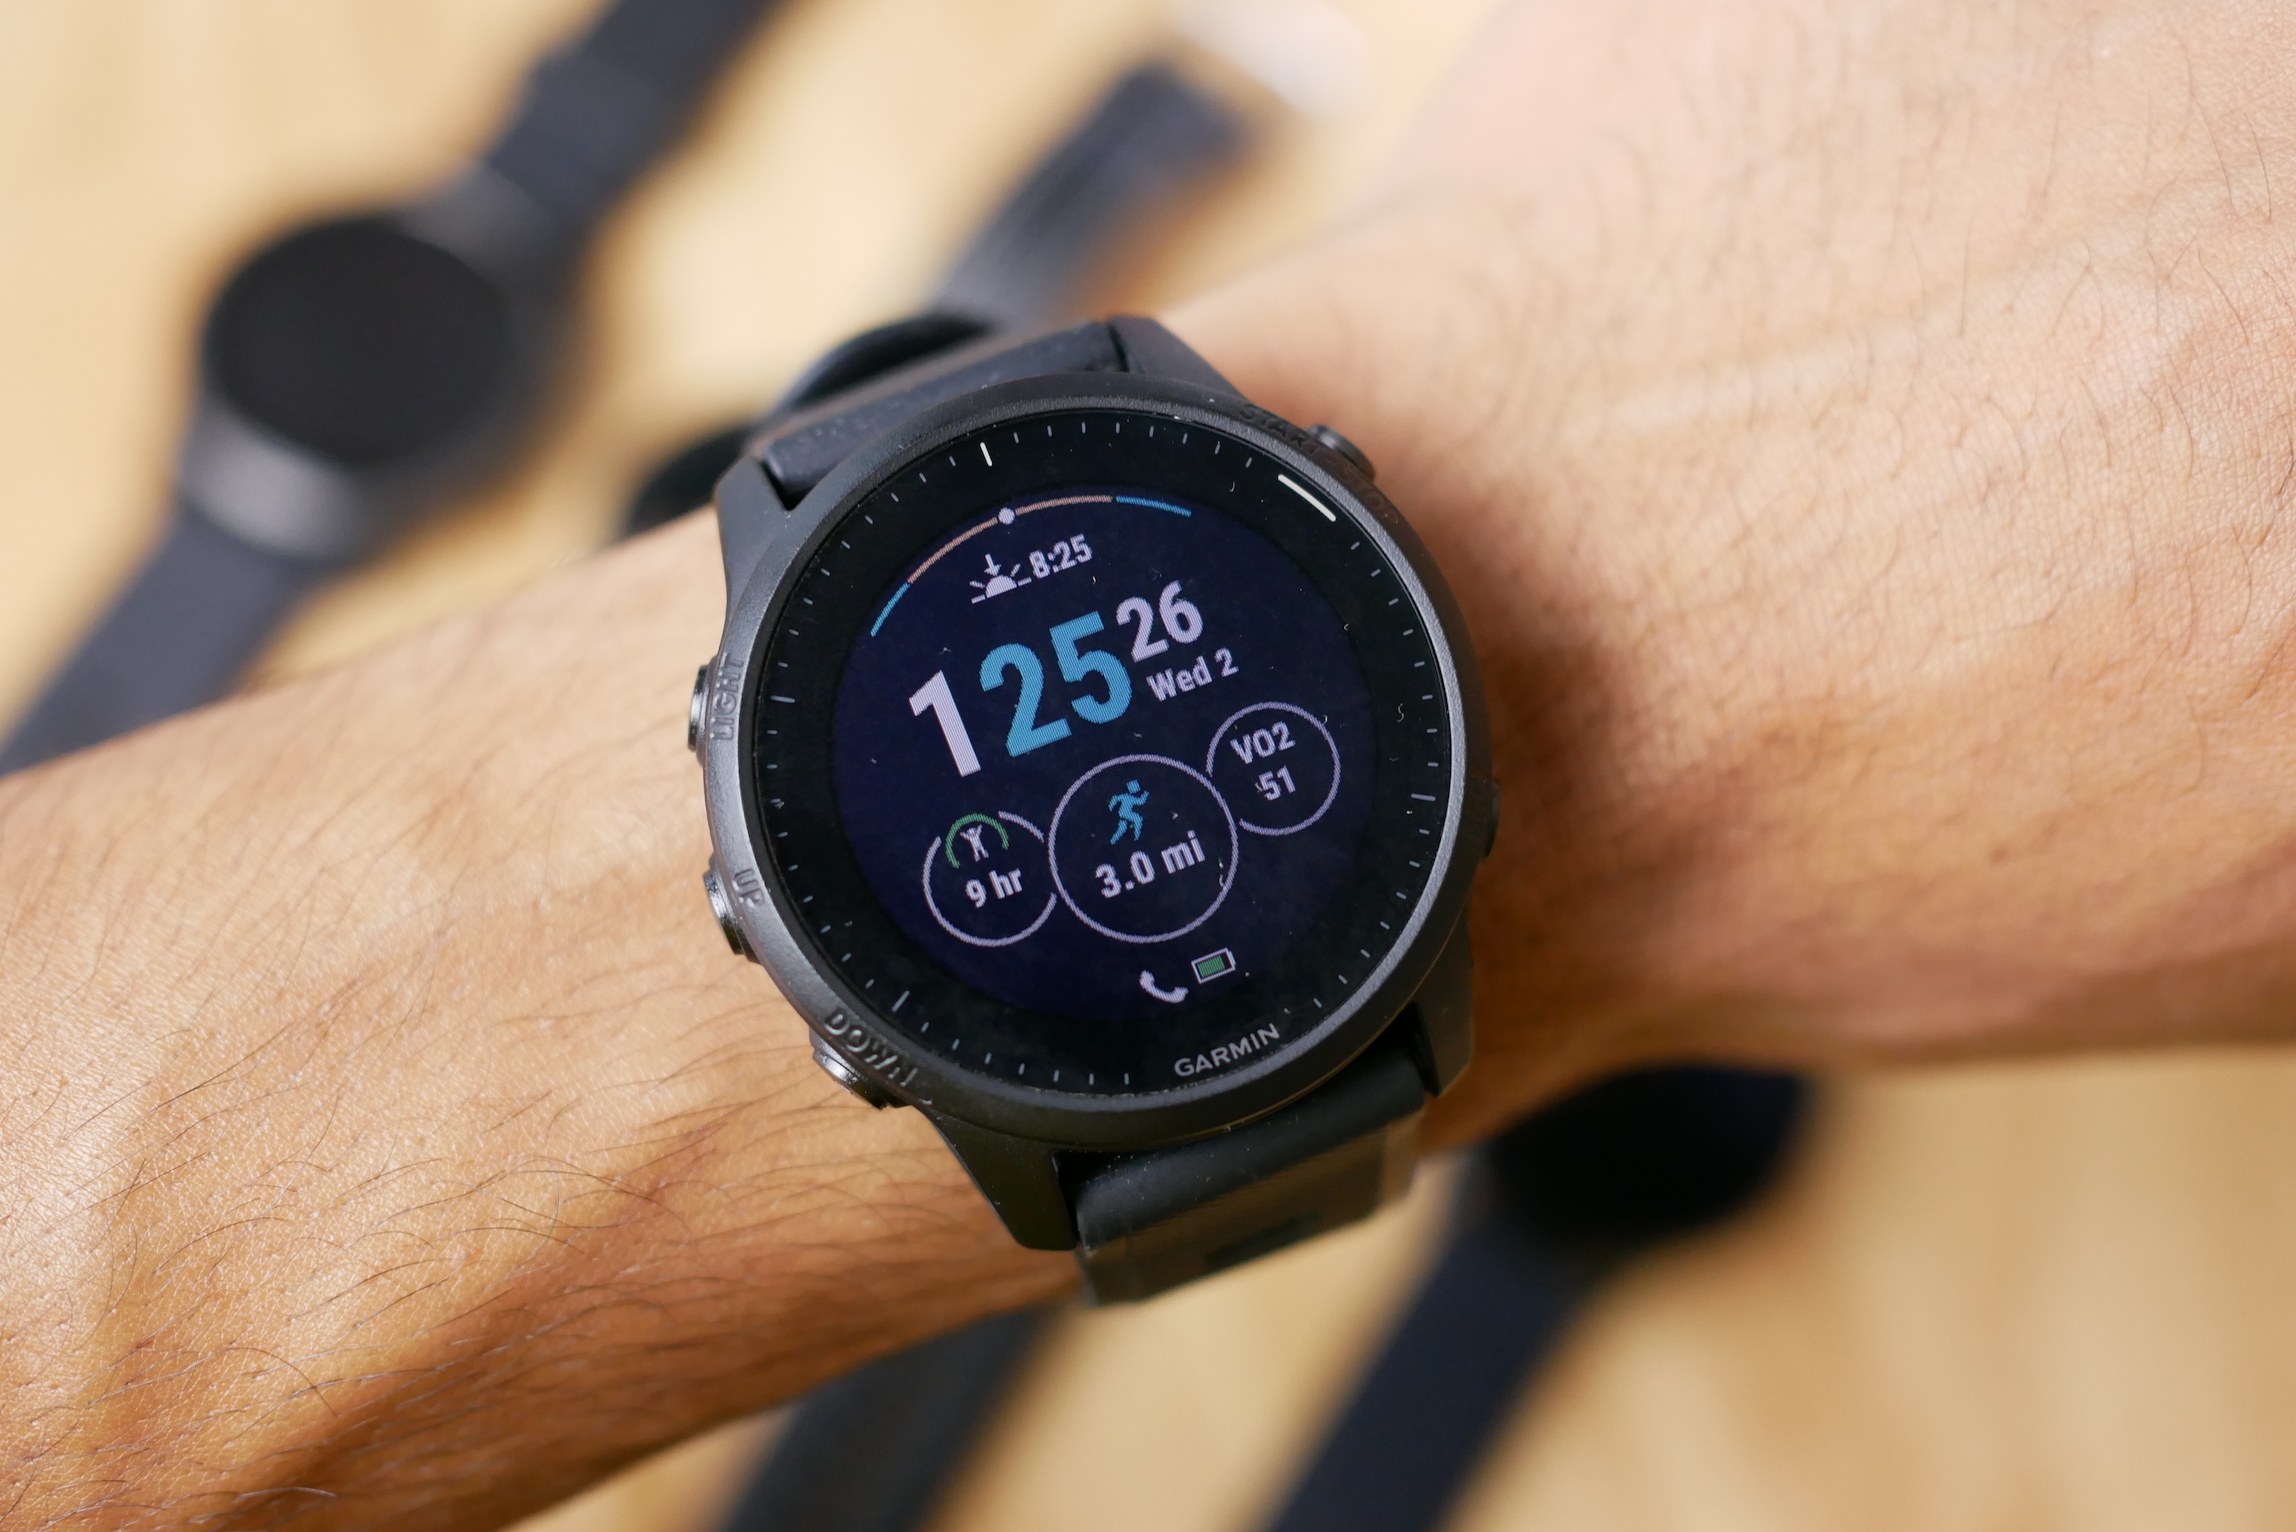 The Garmin Forerunner series is a top choice for runners.